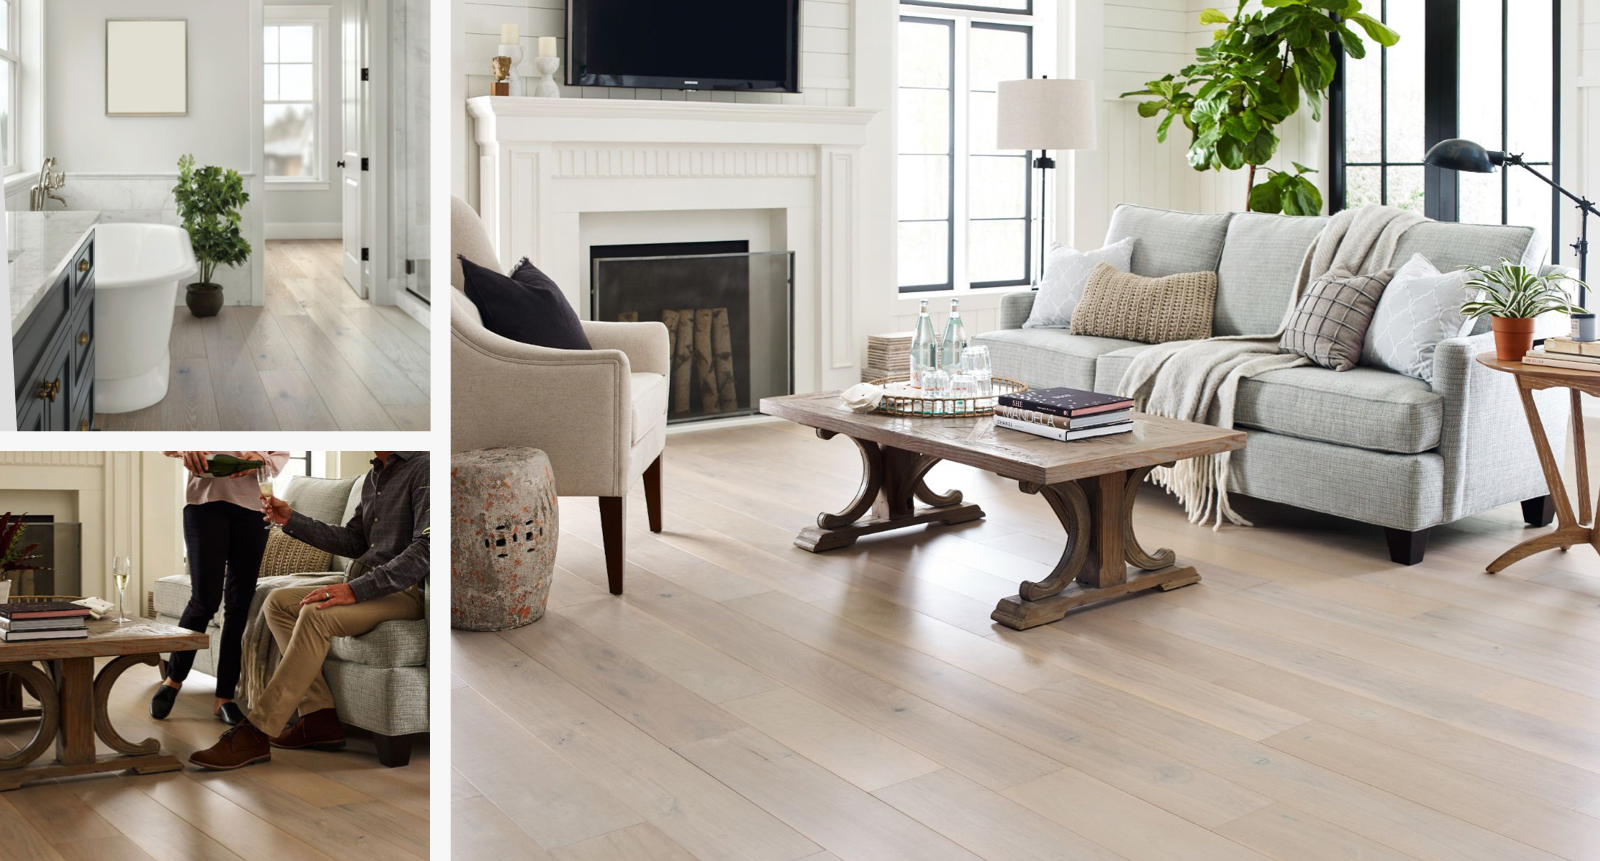 Floorte waterproof hardwood flooring for your home | Color Interiors